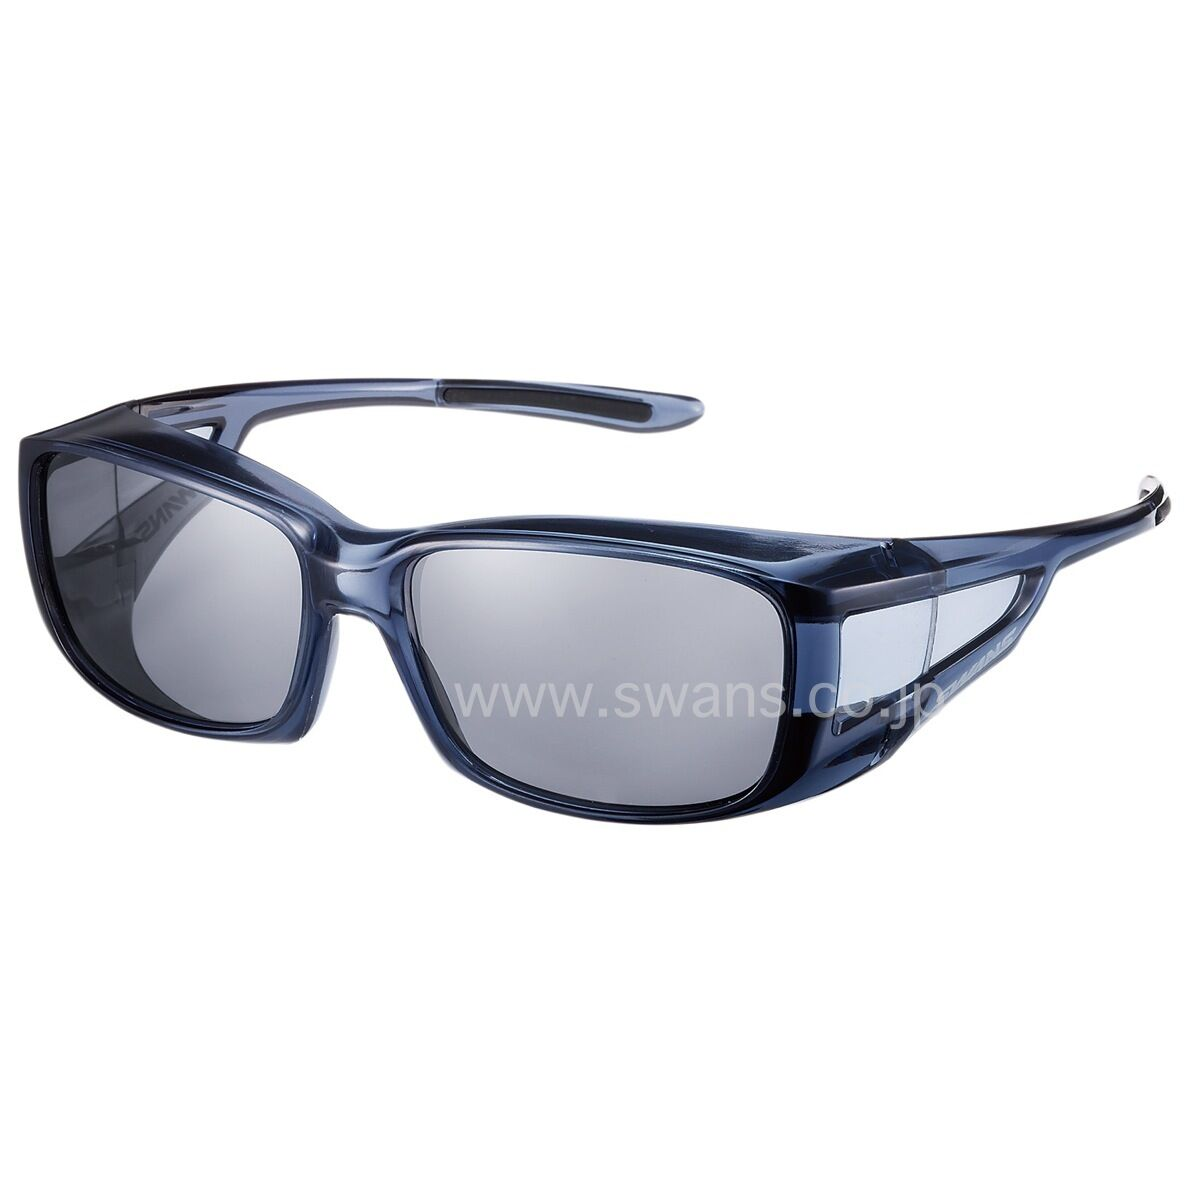 SWANS Japan Over the glasses UV cut Polarized  smoke OG4-0051 SCLA  all in high quality and low price